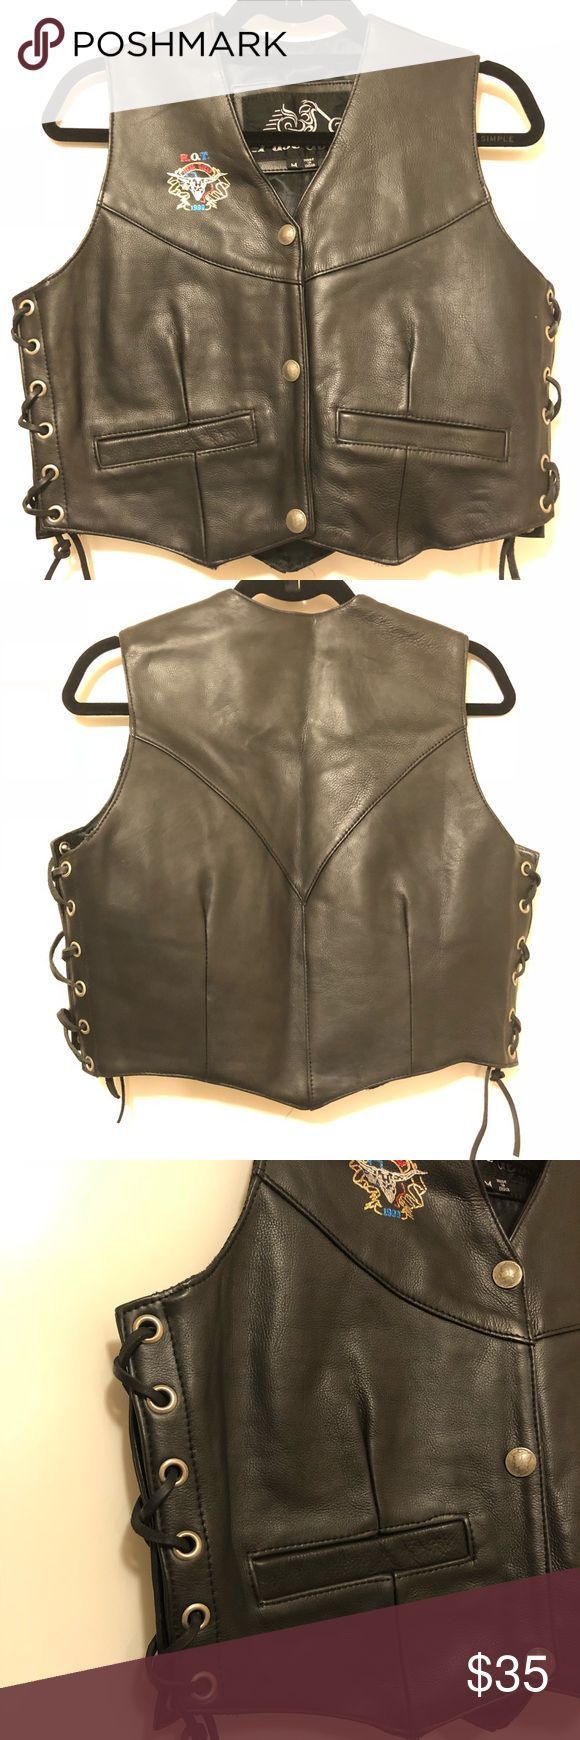 Women's leather biker vest Womens ROT Rally 1999 Black leather biker vest with tie sides.  Nice soft leather abs in great condition. Fast Gear Jackets & Coats Vests